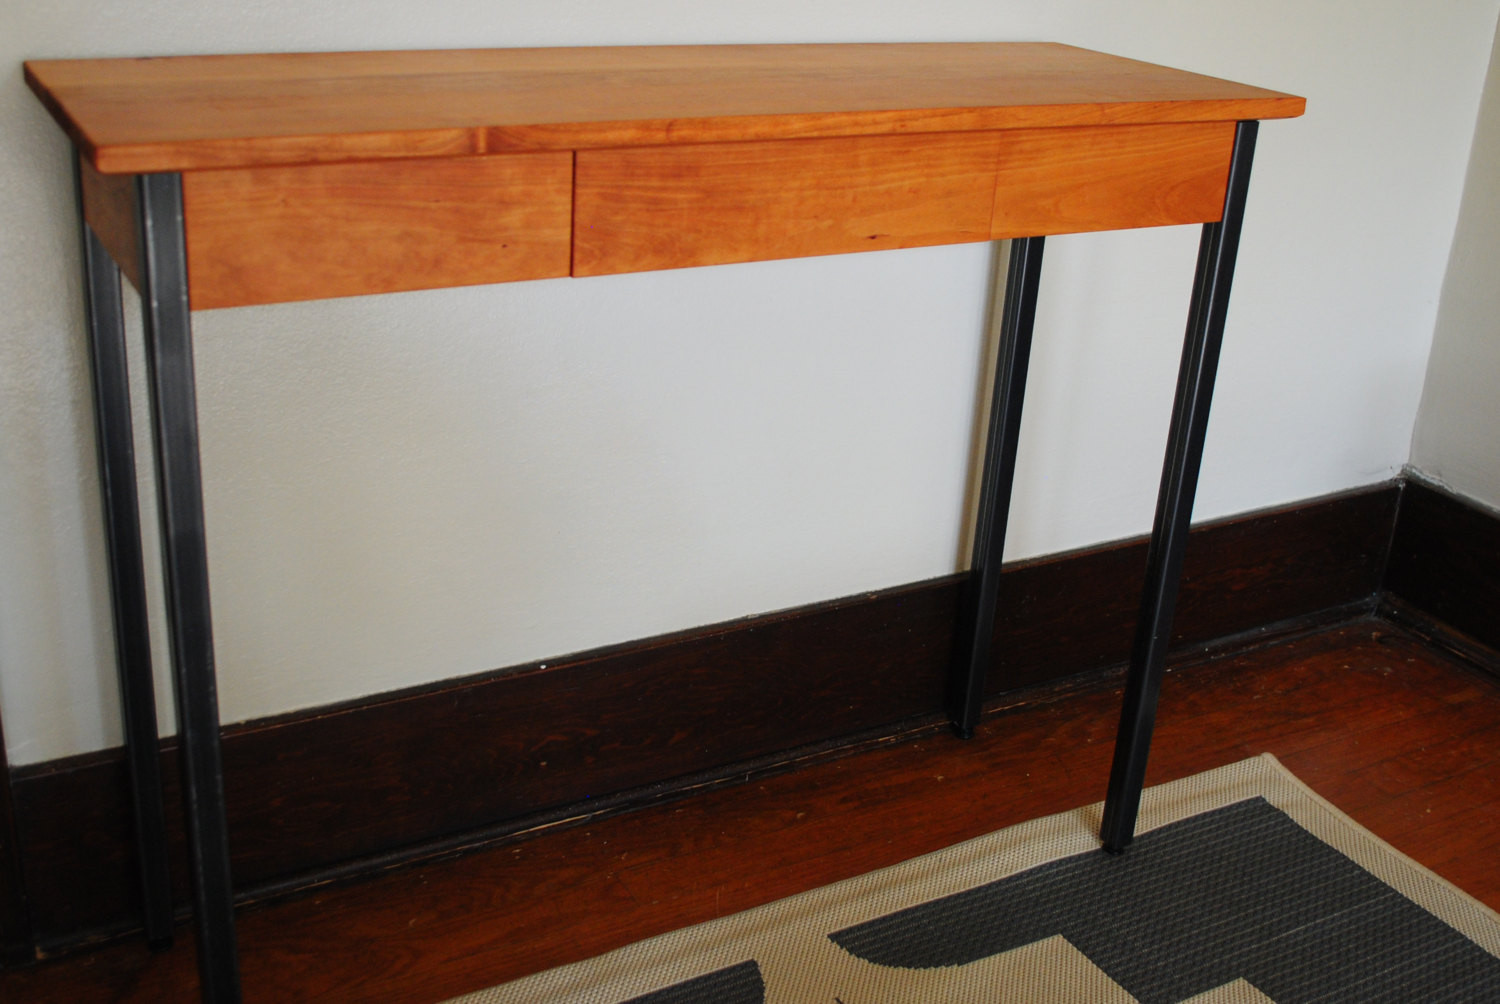 Best ideas about Metal Entryway Table . Save or Pin Metal Leg Entryway Table Solid Wood used in a Hallway or as Now.